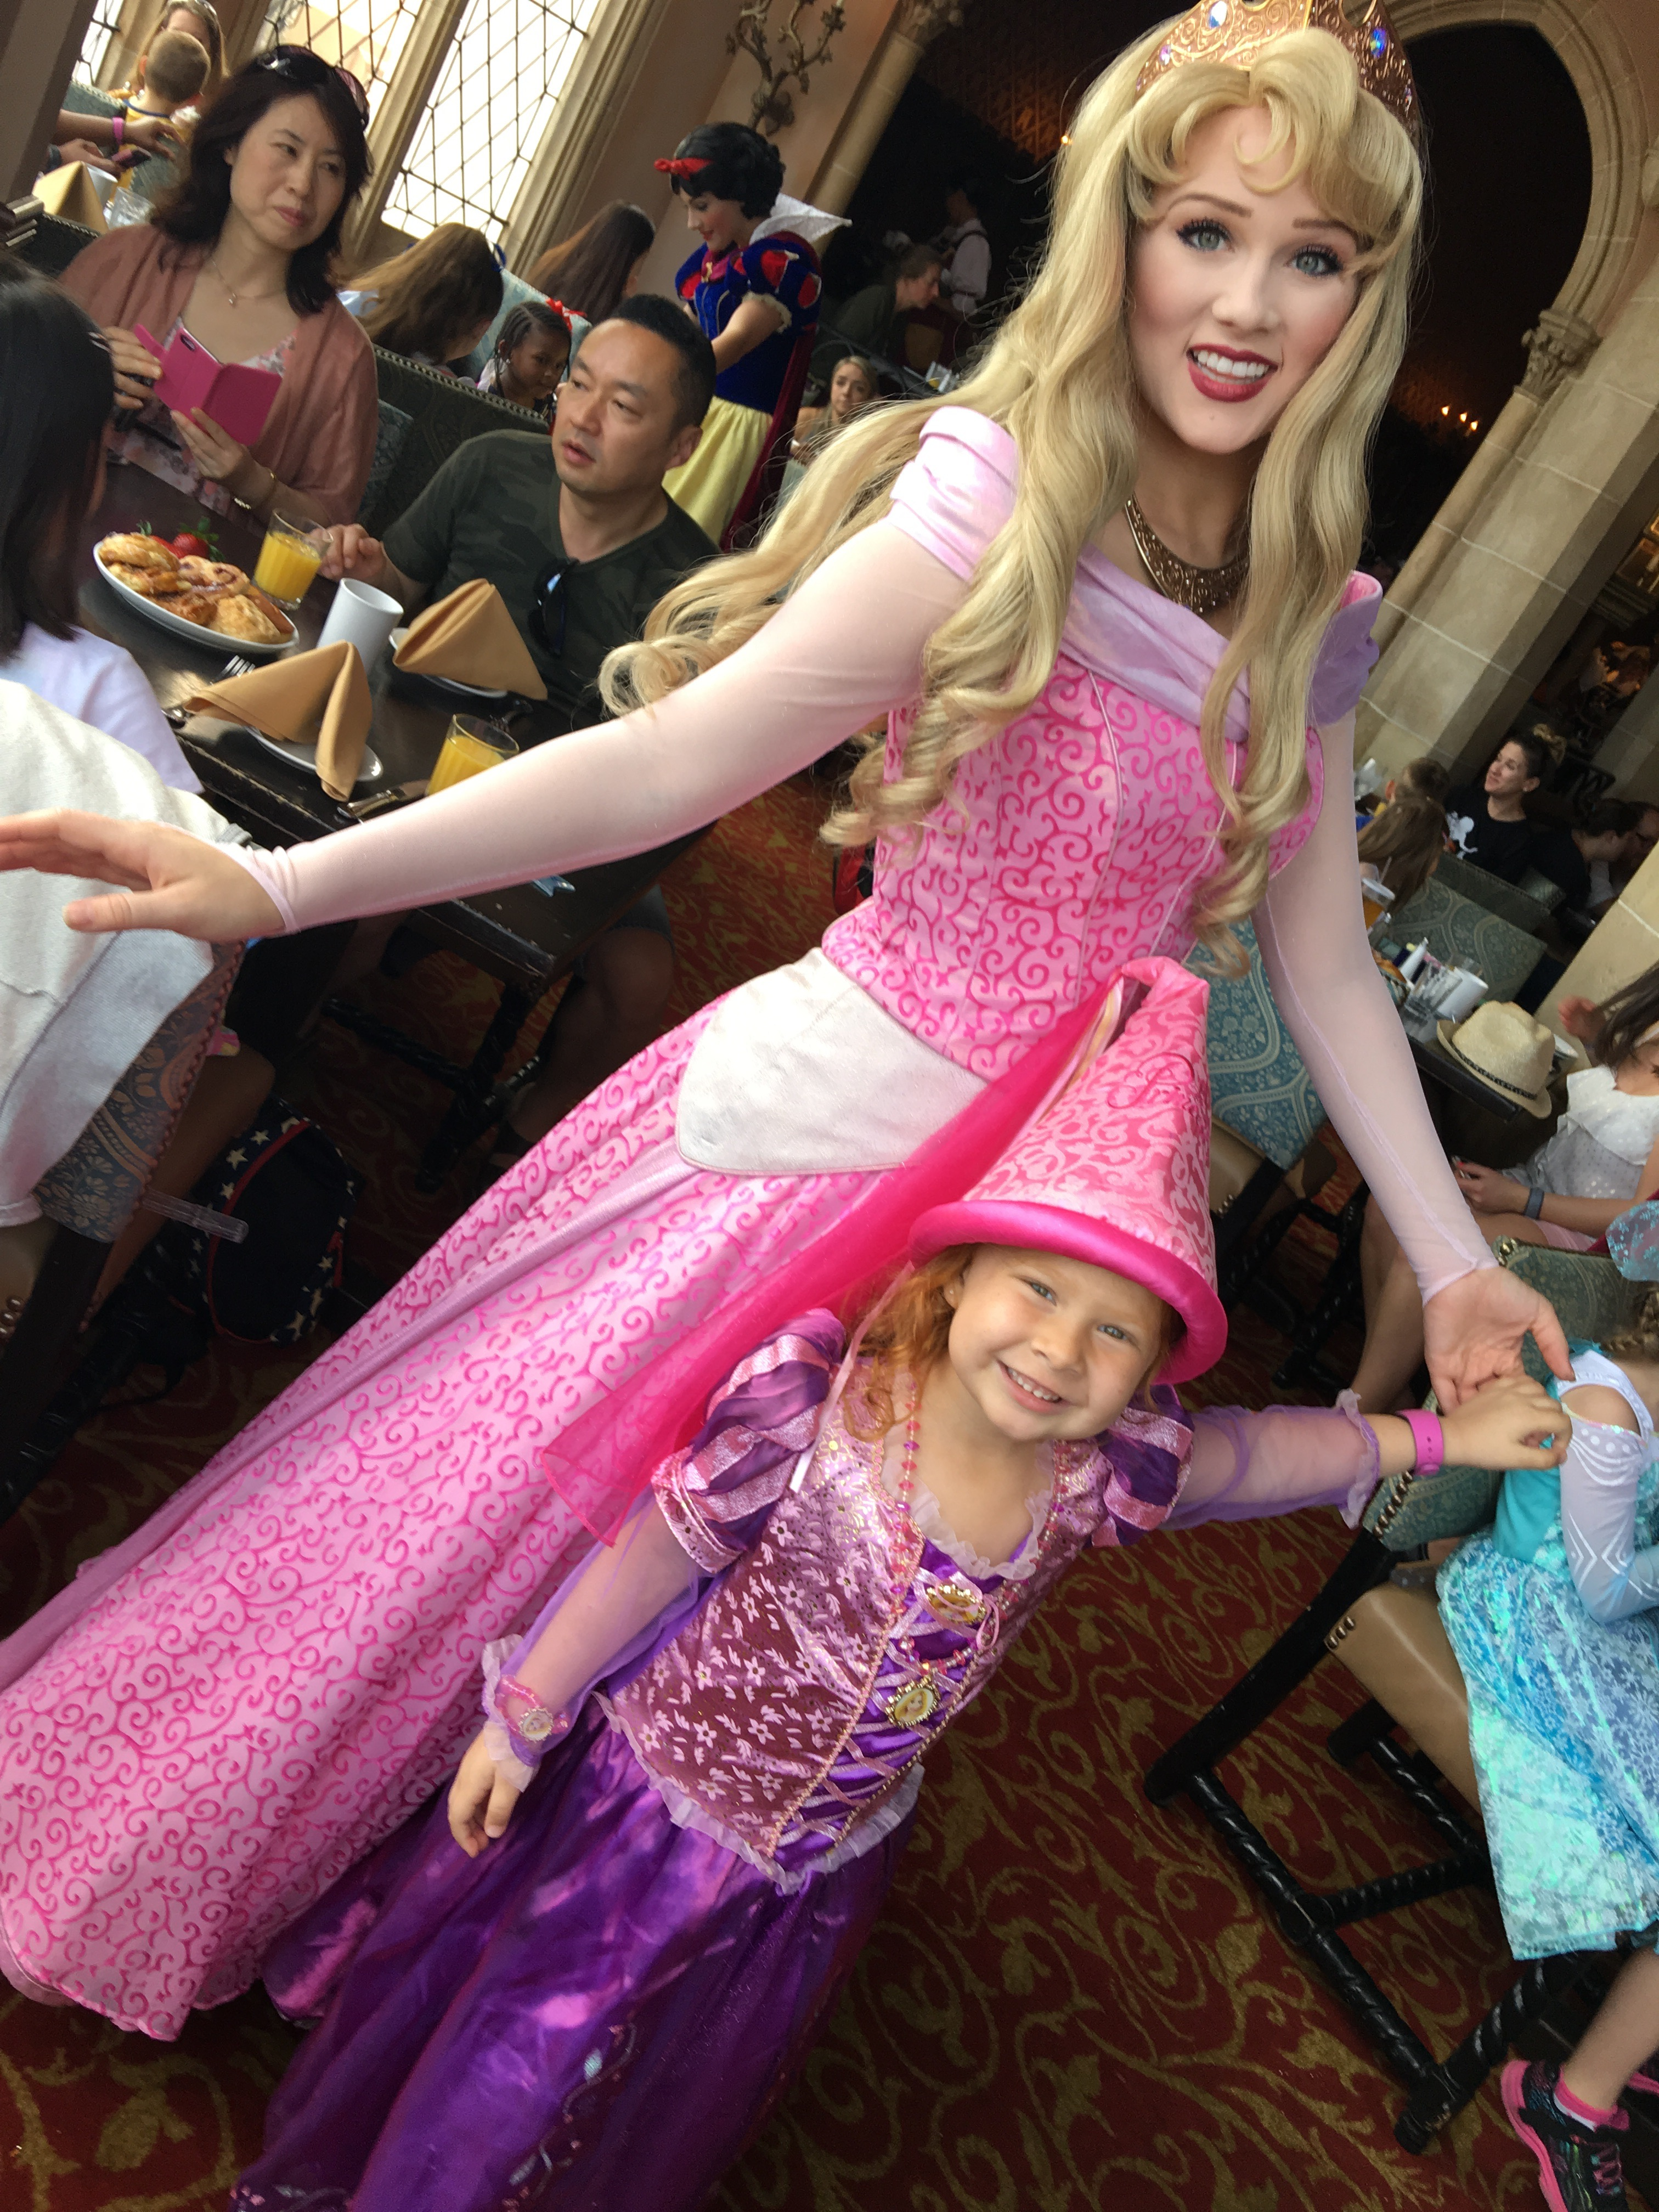 Desayuno con las Princesas de Disney // Brunch with Disney Princesses